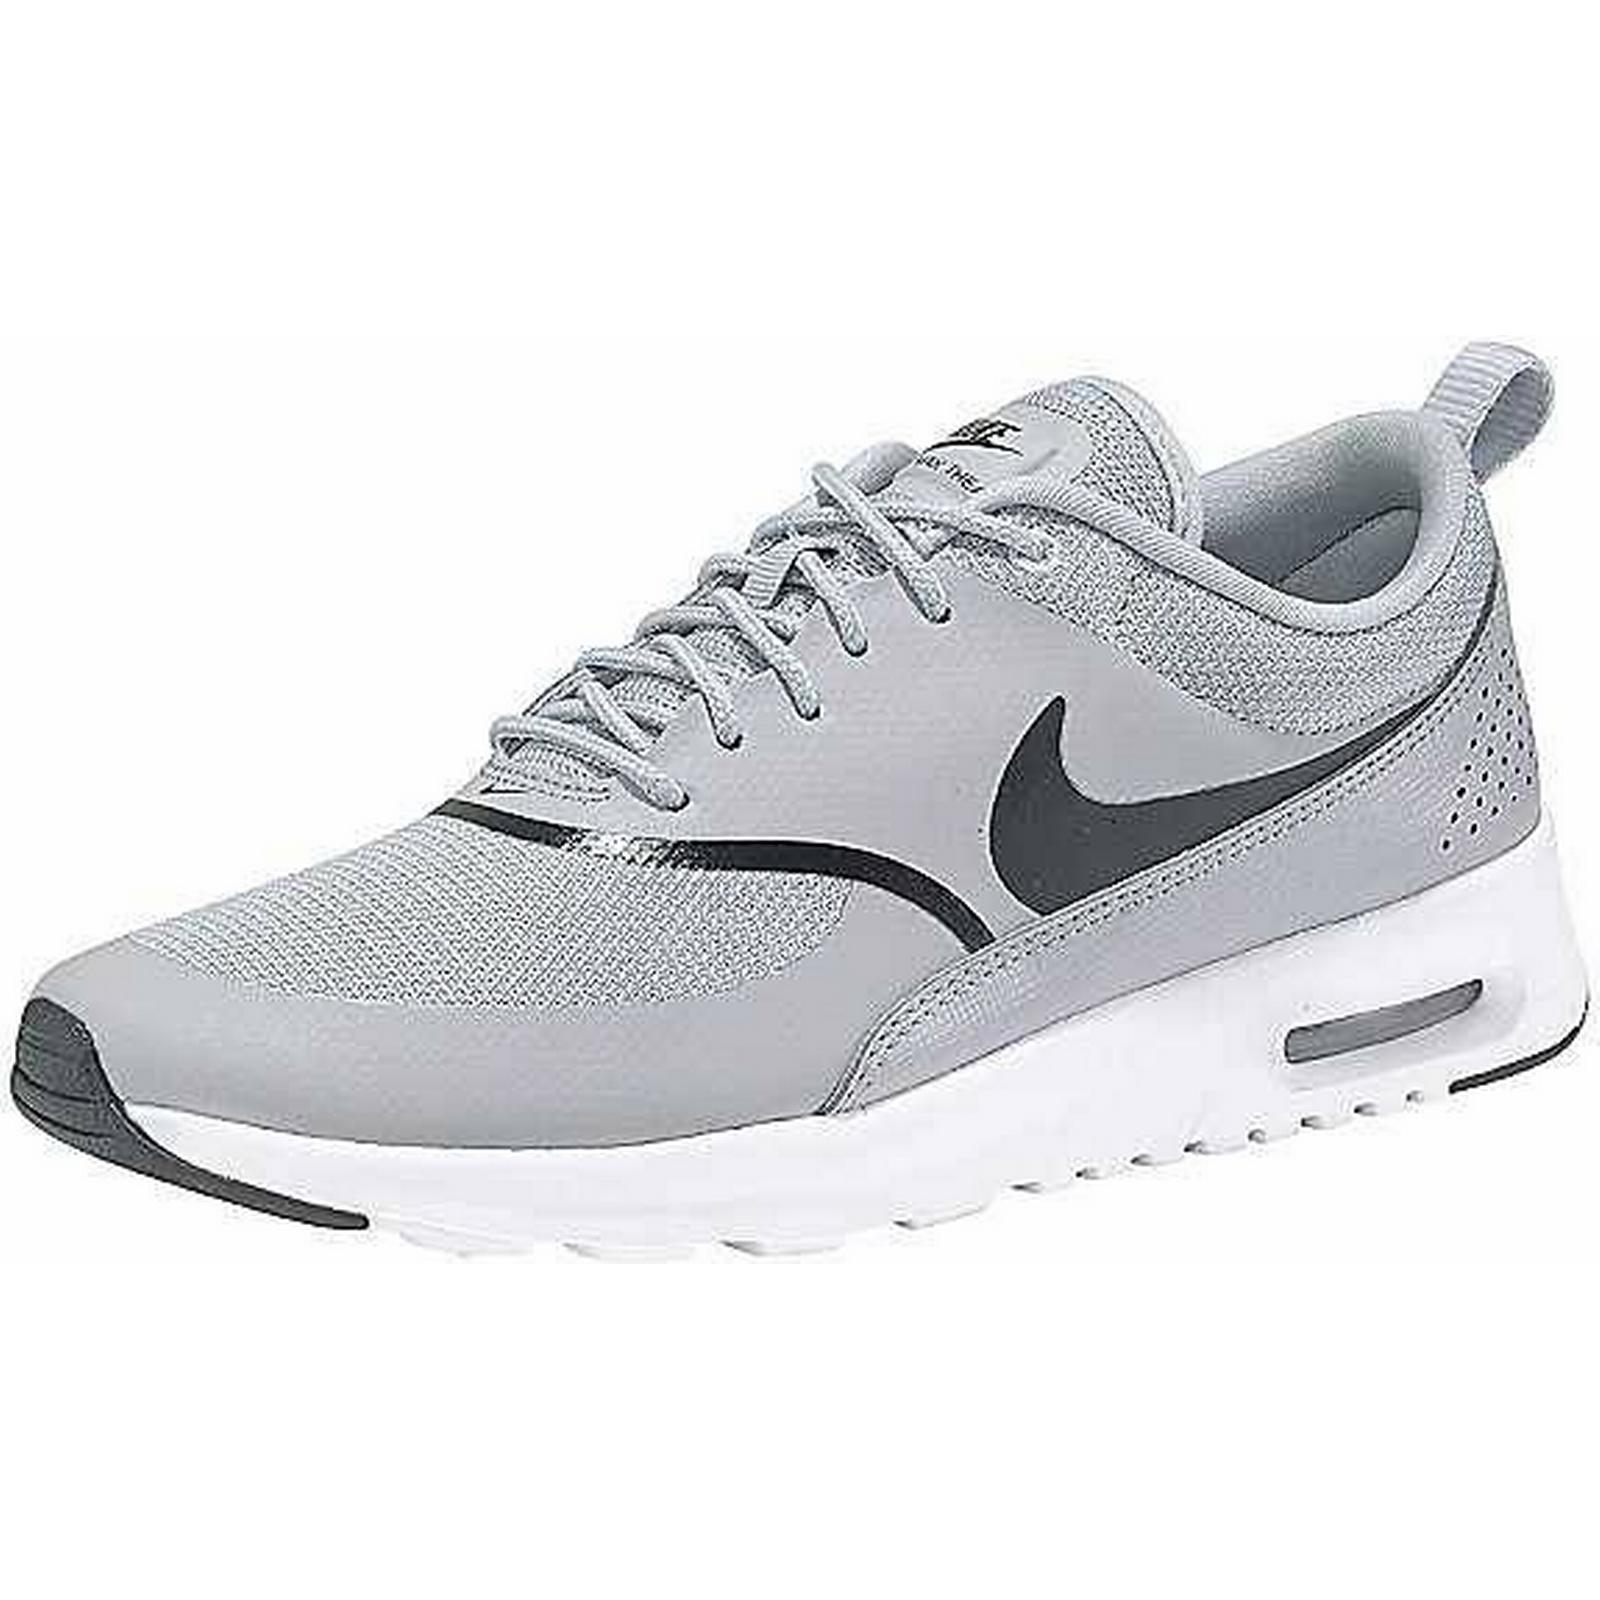 Man/Woman: Nike 'Air Craft Max Thea' Trainers: Excellent Craft 'Air 622b75